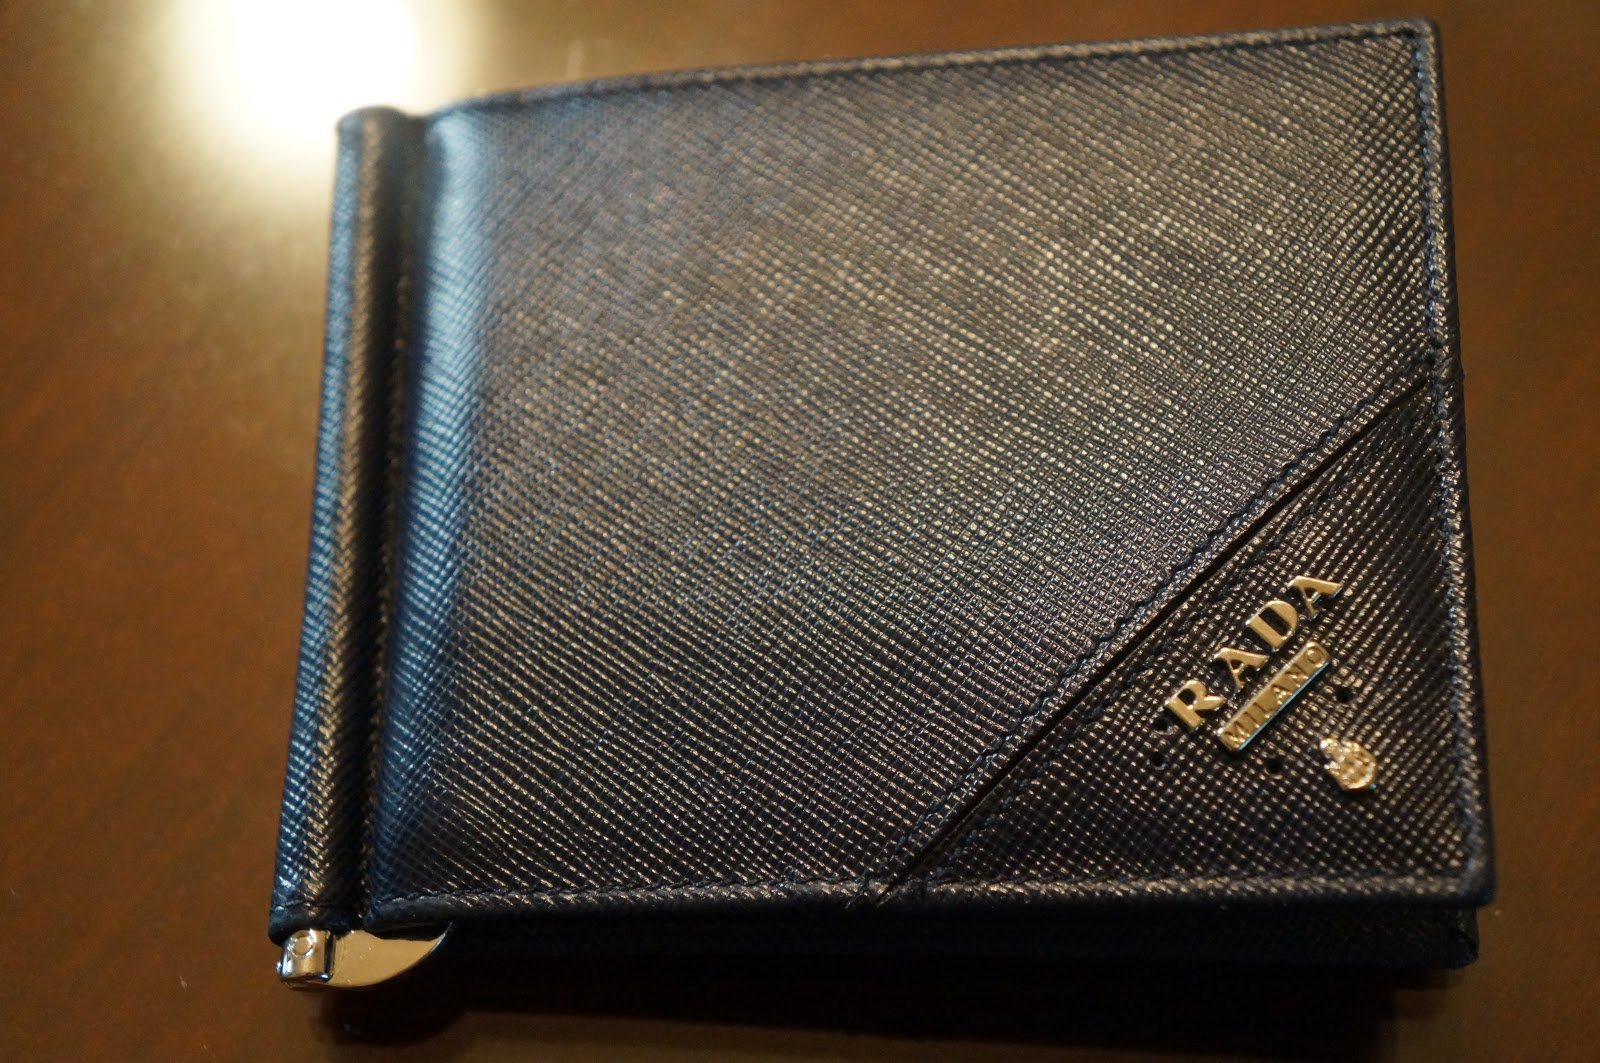 07c256bdb0c0 ... Prada Safiano Money Clip Wallet for our three year anniversary (she's  awesome!) back in July. Well, after several months of heavy duty use, ...